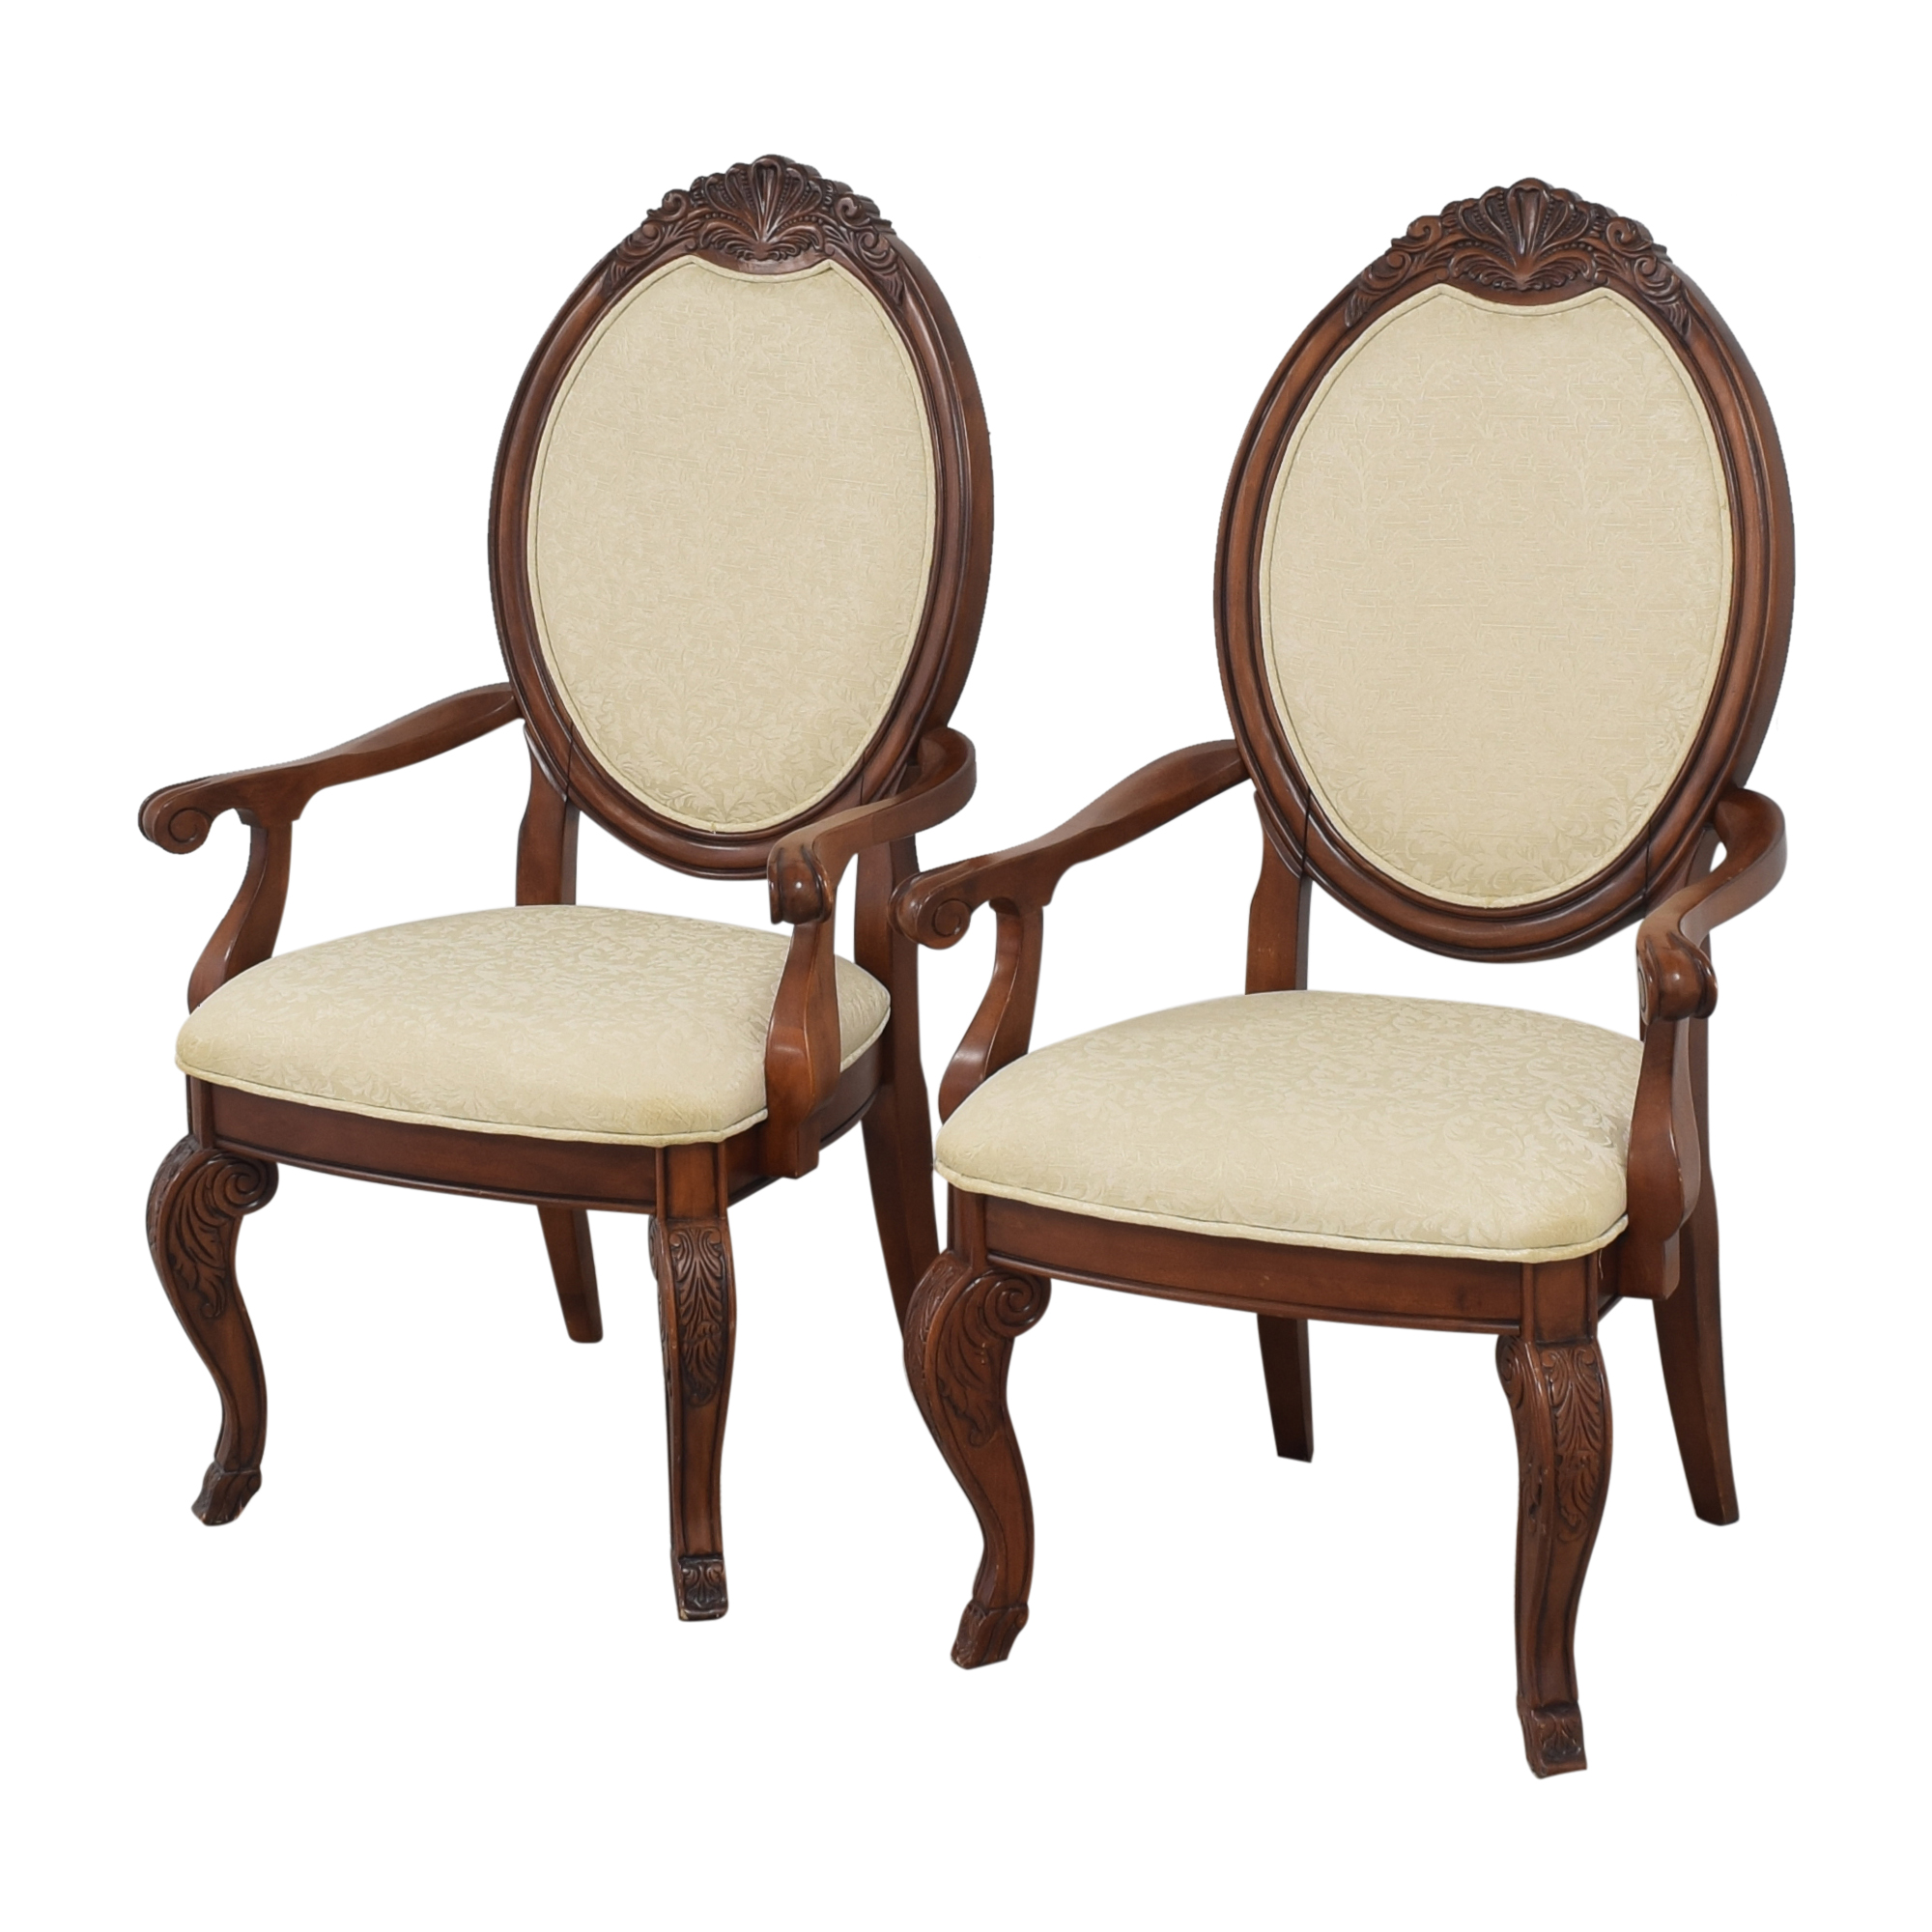 Raymour & Flanigan Raymour & Flanigan Oval Back Dining Arm Chairs nyc